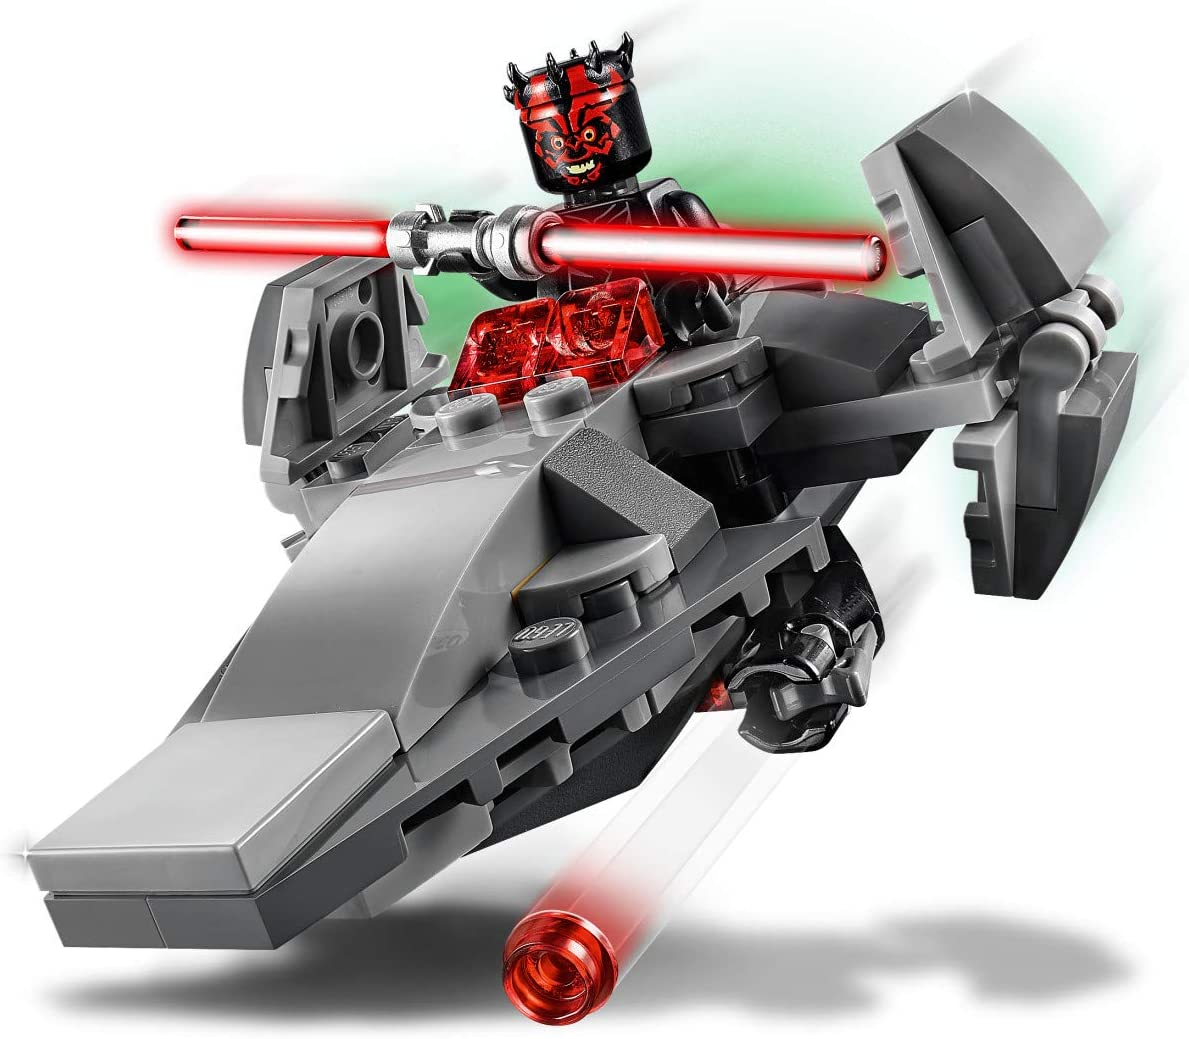 Lego Star Wars Sith Infiltrator Microfighter from set 75224 Ship Only